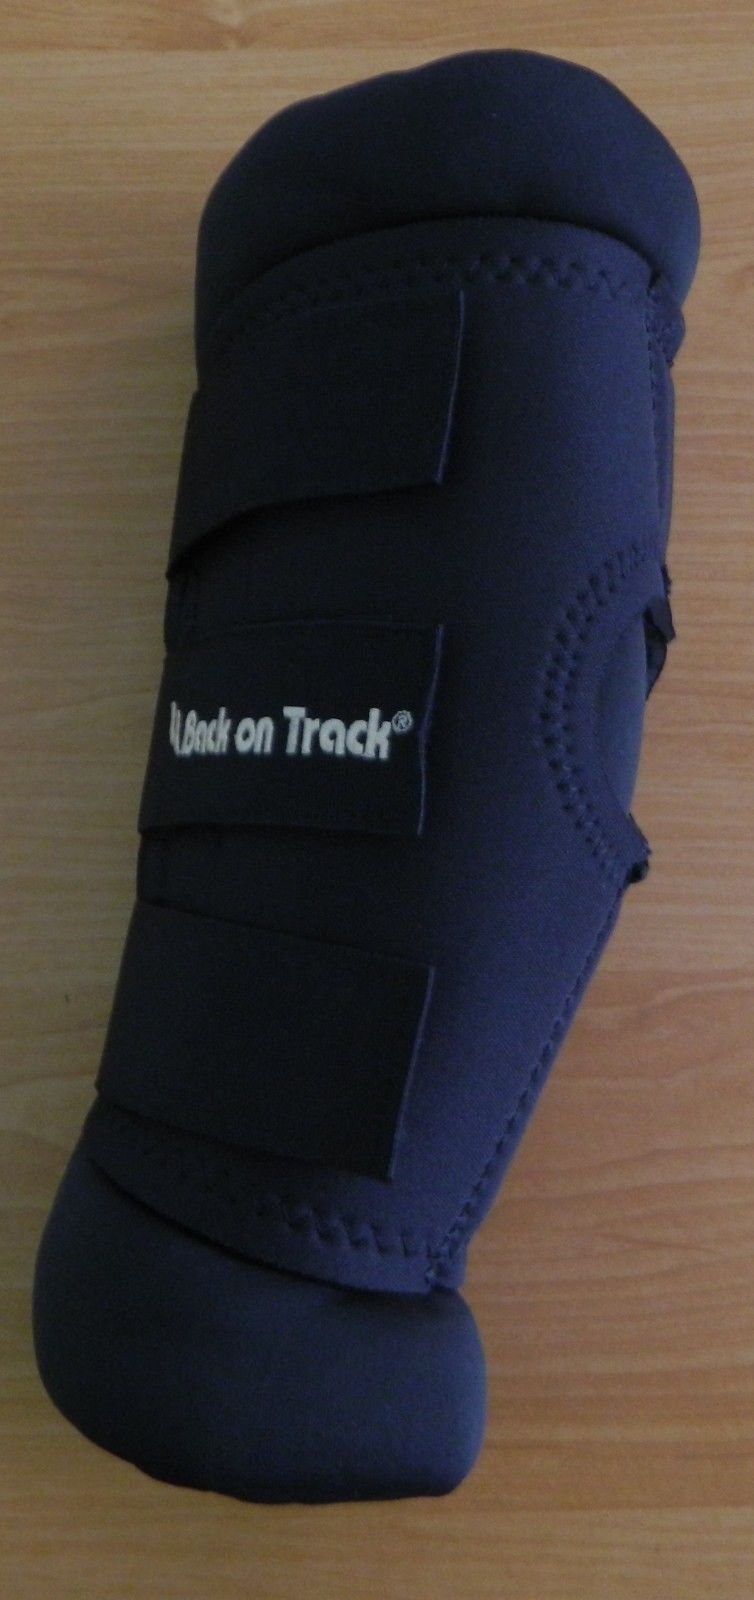 BACK ON TRACK Horse Royal Hock Boots Heat Therapy Relieves Aches Pains XLarge